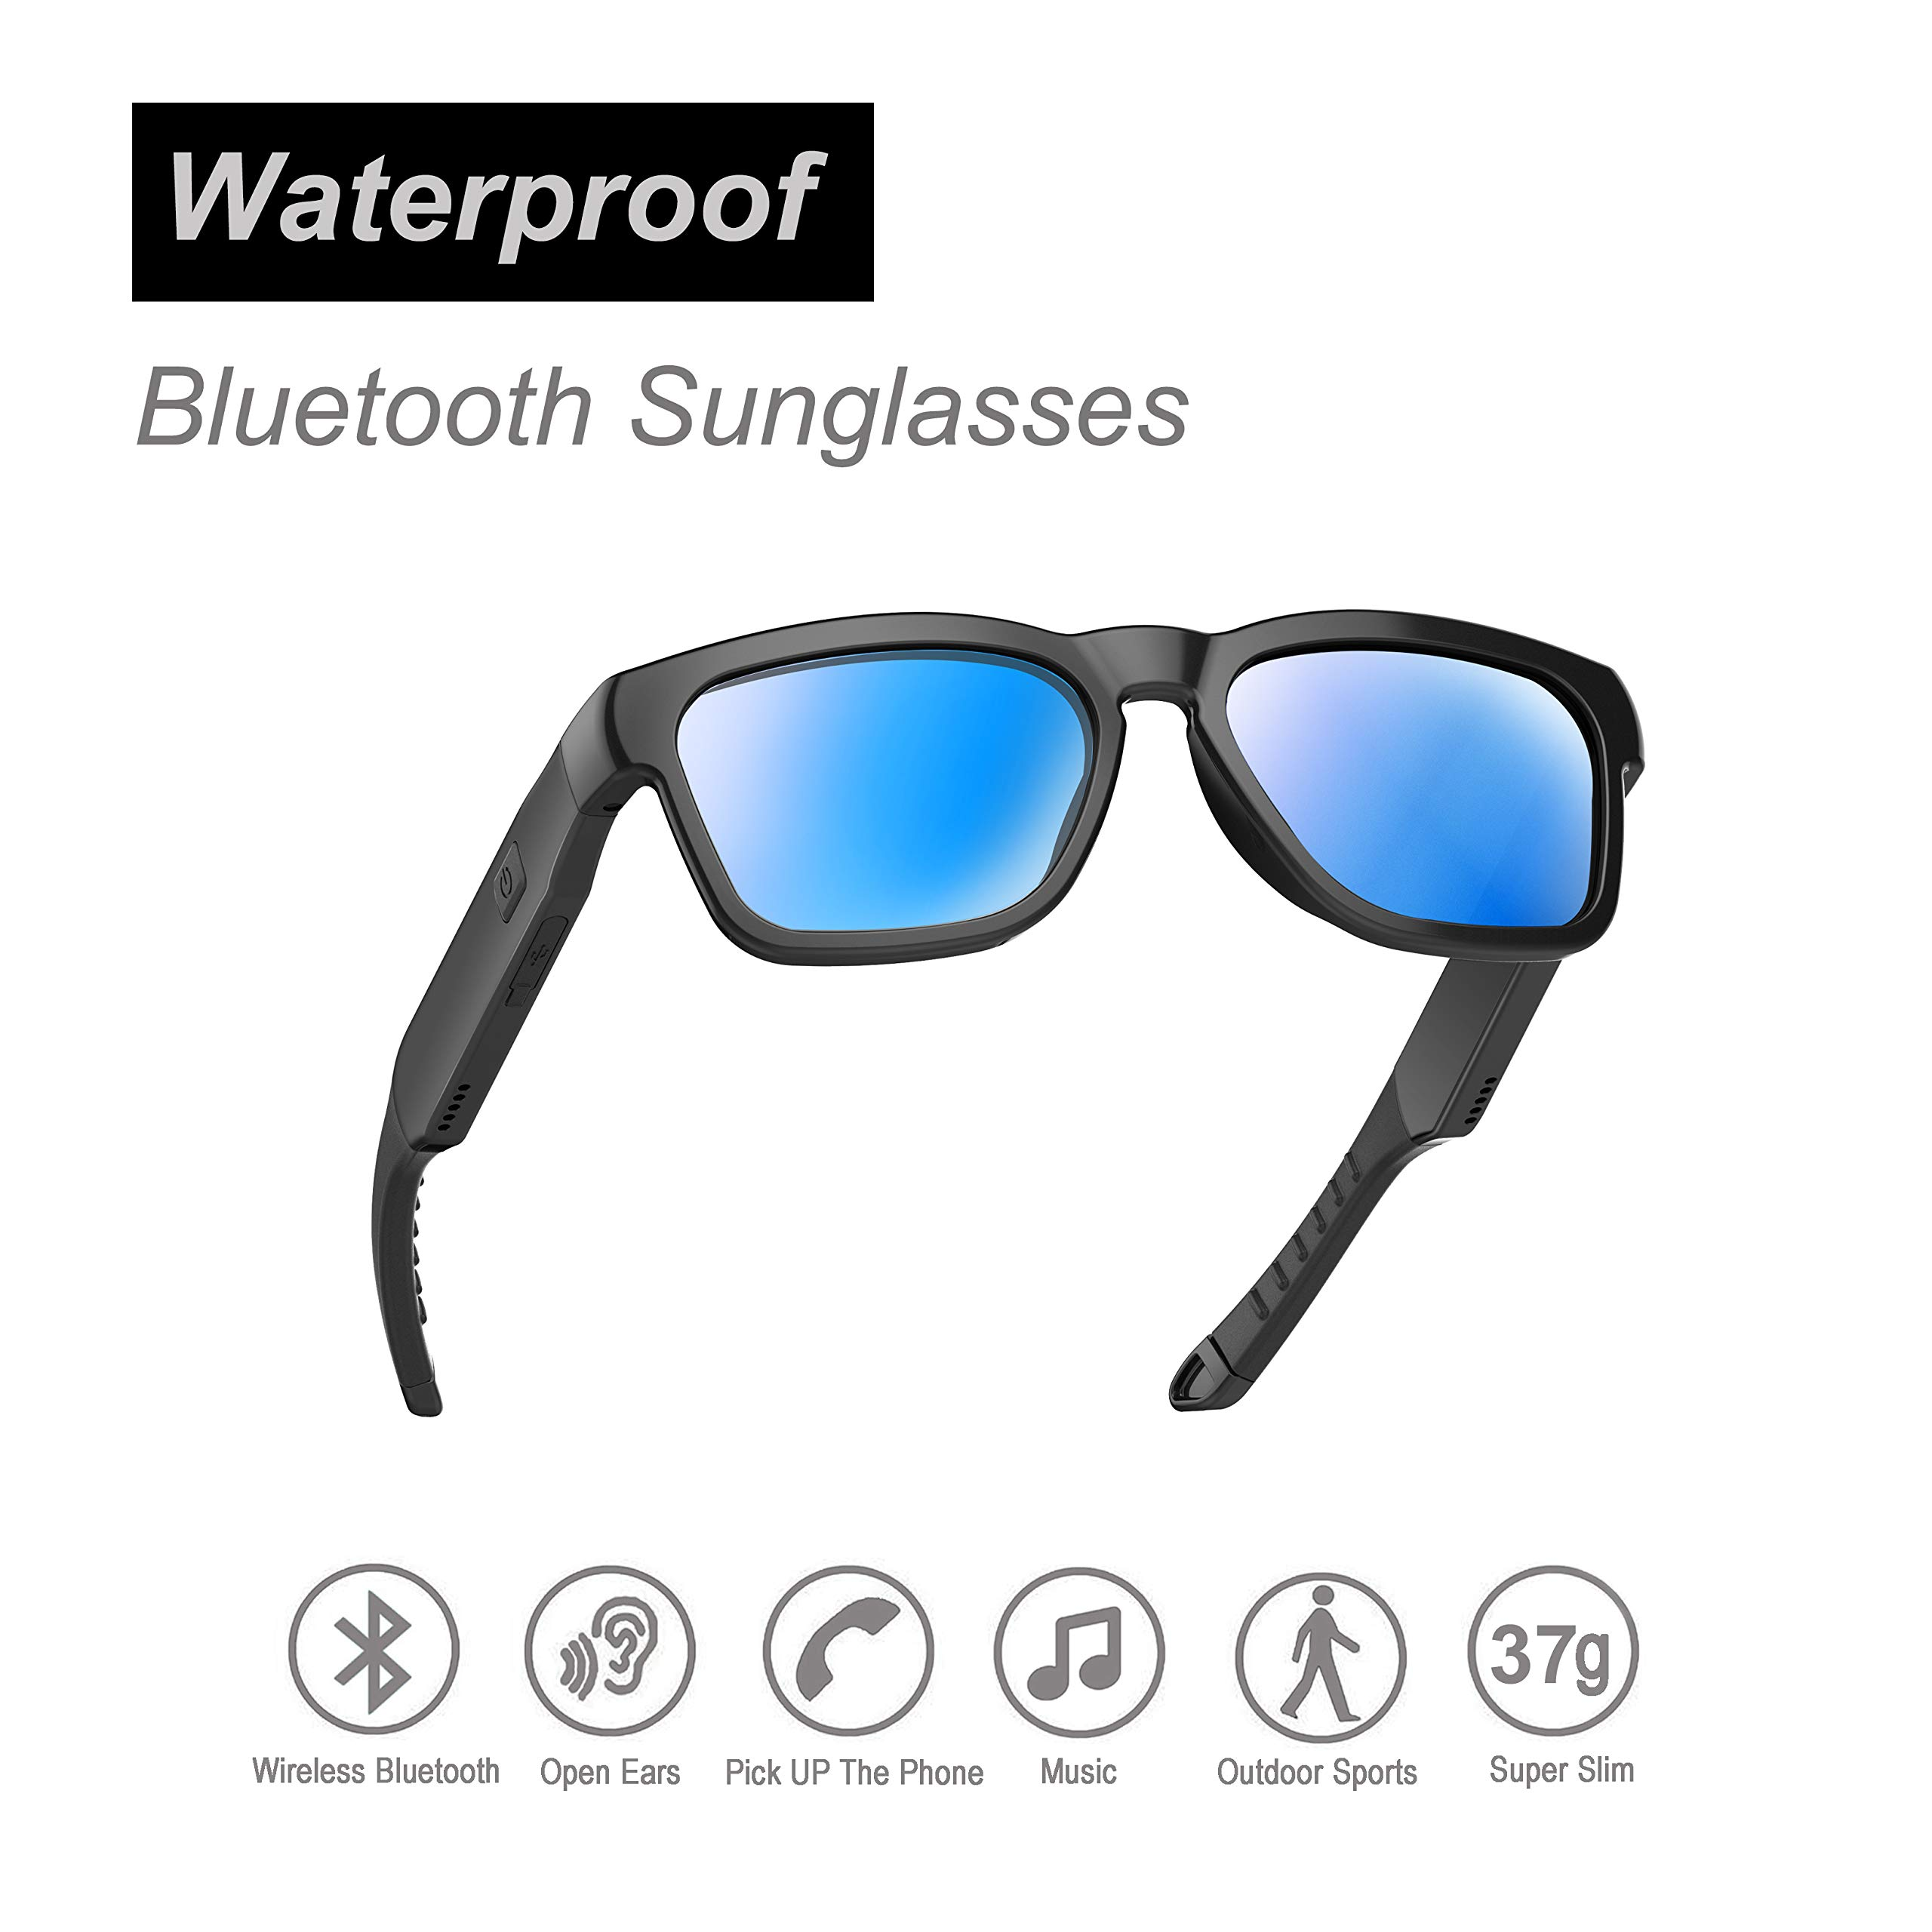 OhO sunshine Water Resistant Audio Sunglasses, Fashionable Bluetooth Sunglasses to Listen Music and Make Phone Calls,UV400 Polarized Lens and Compatible with Prescription Lens